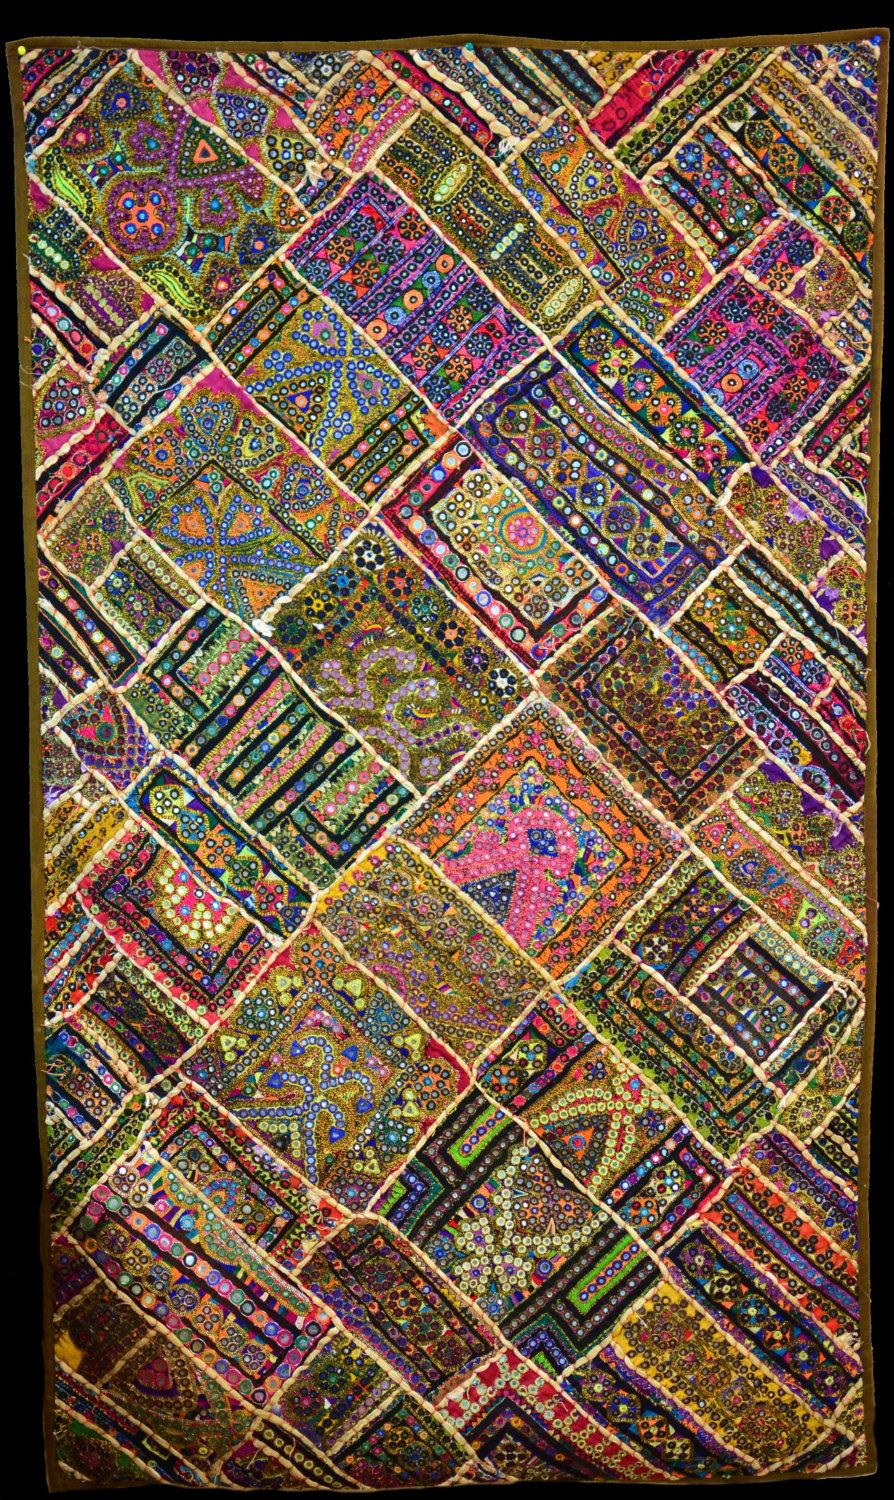 embroidered sindhi patchwork decorative wall decor unique decor embroidered sindhi patchwork decorative wall decor unique decor home decor sindh textile sindhi handmade wall hanging wall art tapestry